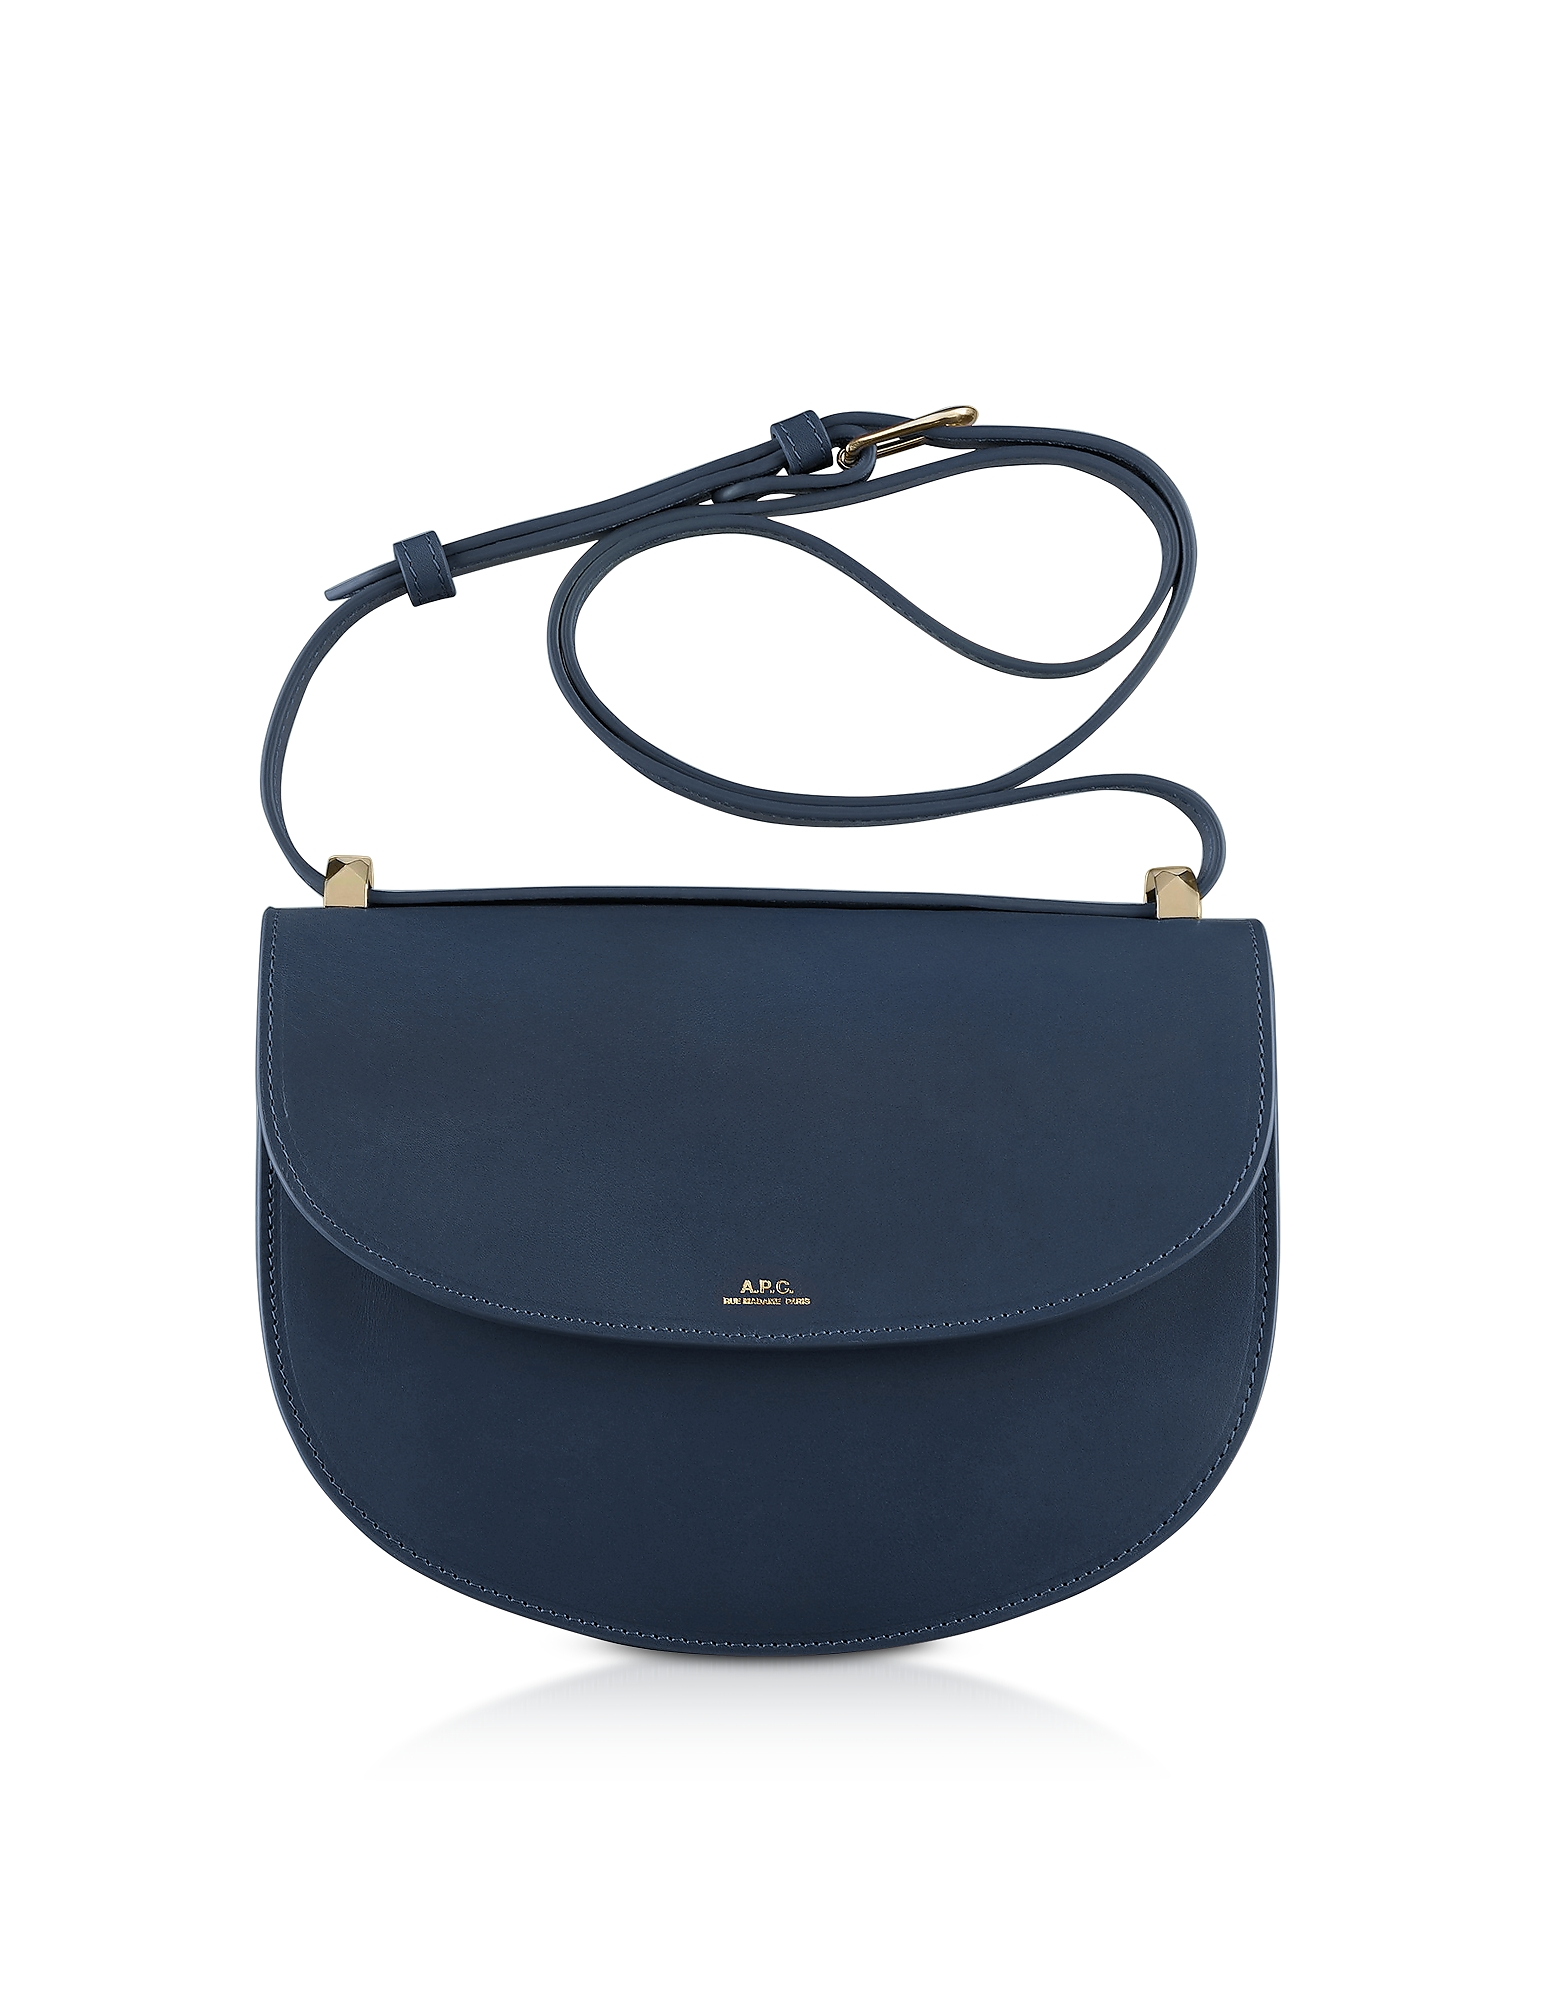 Geneve Leather Crossbody Bag